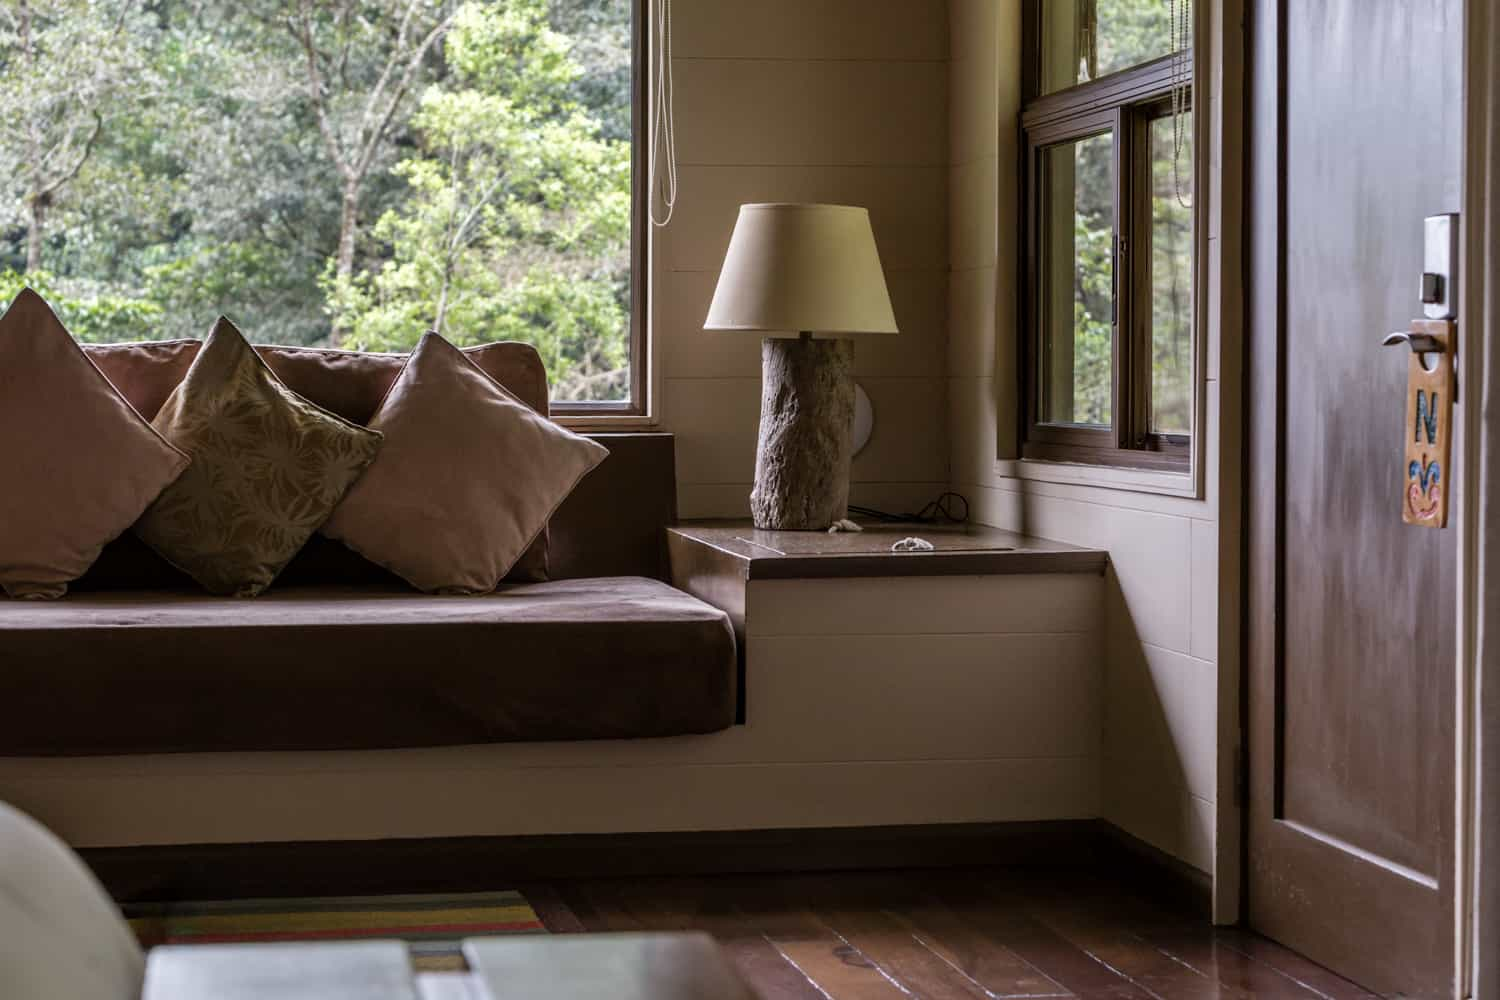 Couch by window with cloud forest view by suite entrance.